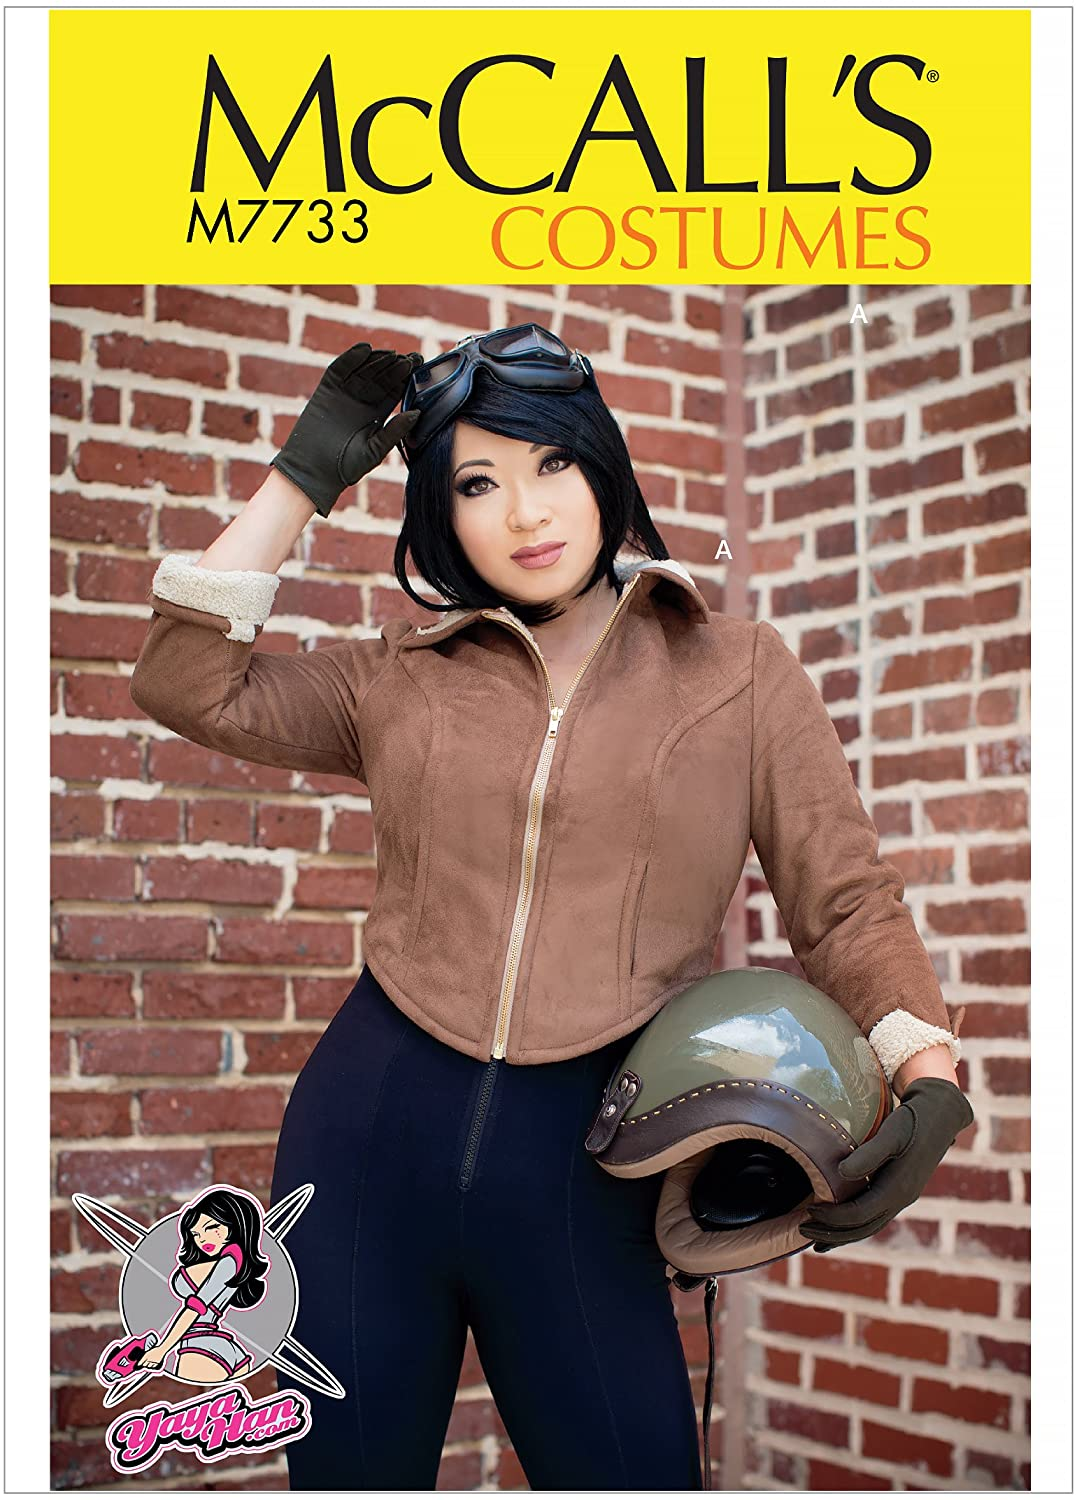 McCalls Patterns Bomber Jacket Cosplay Costume Sewing Pattern for Women by Yaya Han, Sizes 14-22